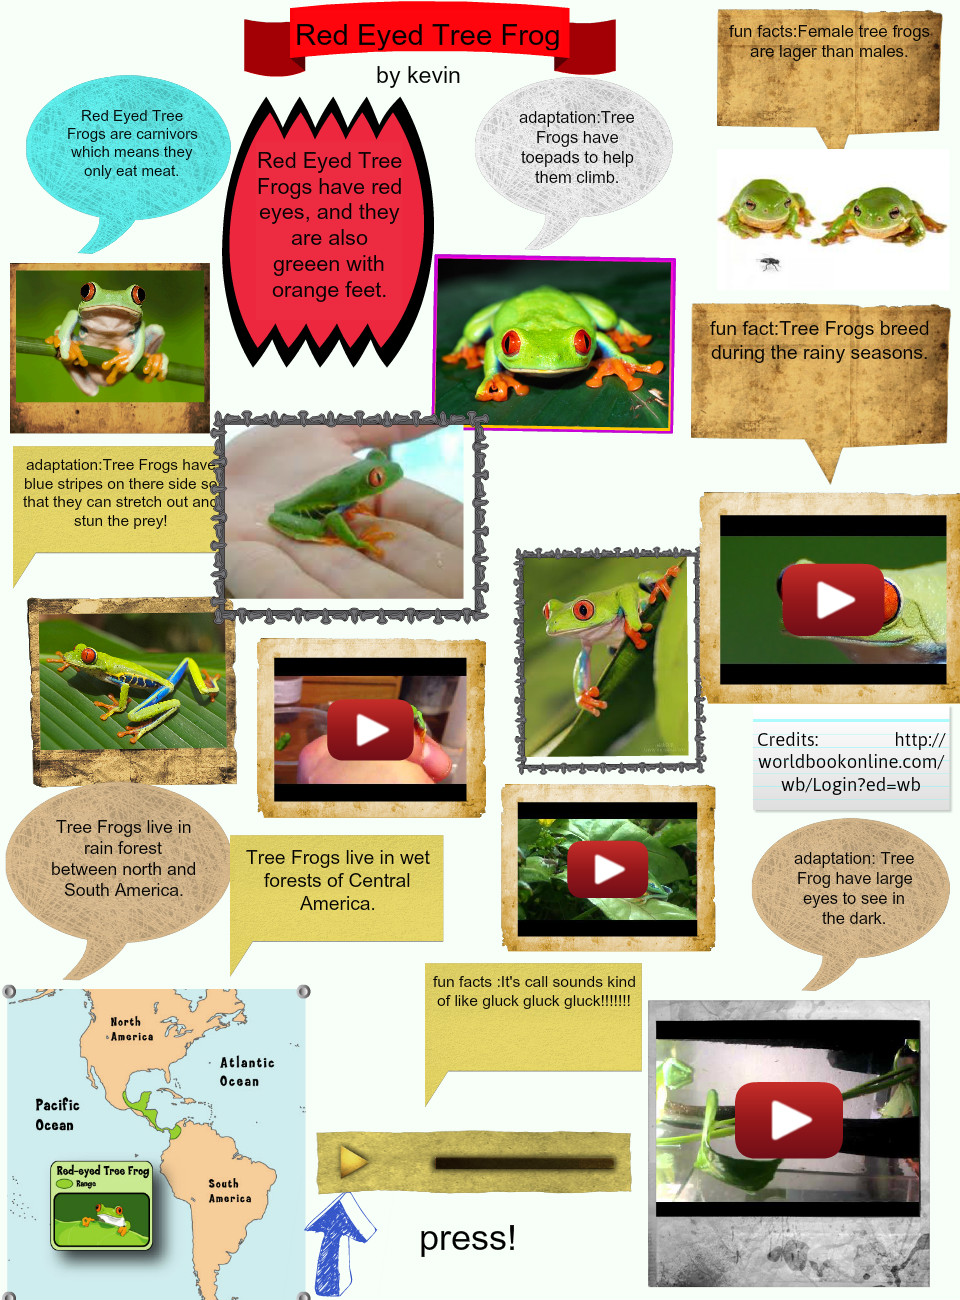 Red Eyed Tree Frog Kevin